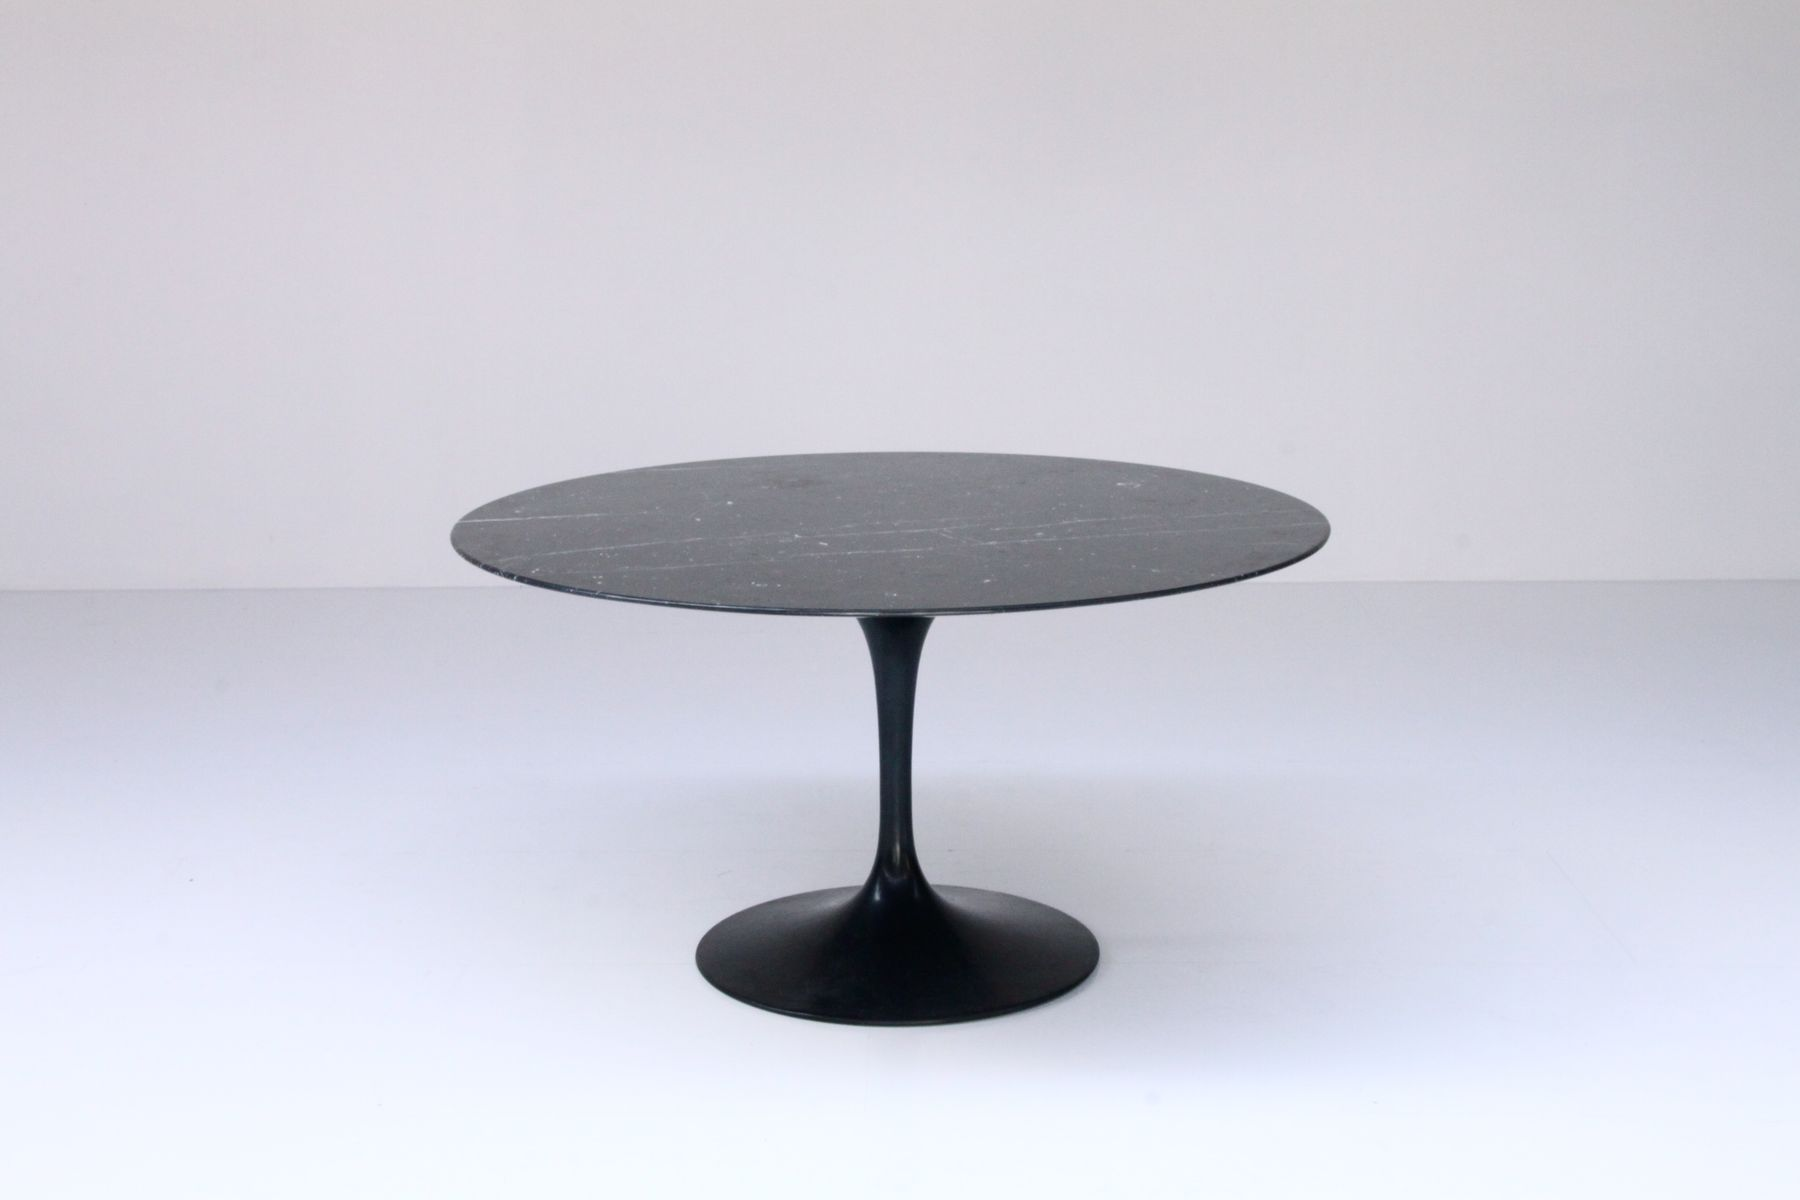 tulip table by eero saarinen for knoll 1970 for sale at pamono. Black Bedroom Furniture Sets. Home Design Ideas